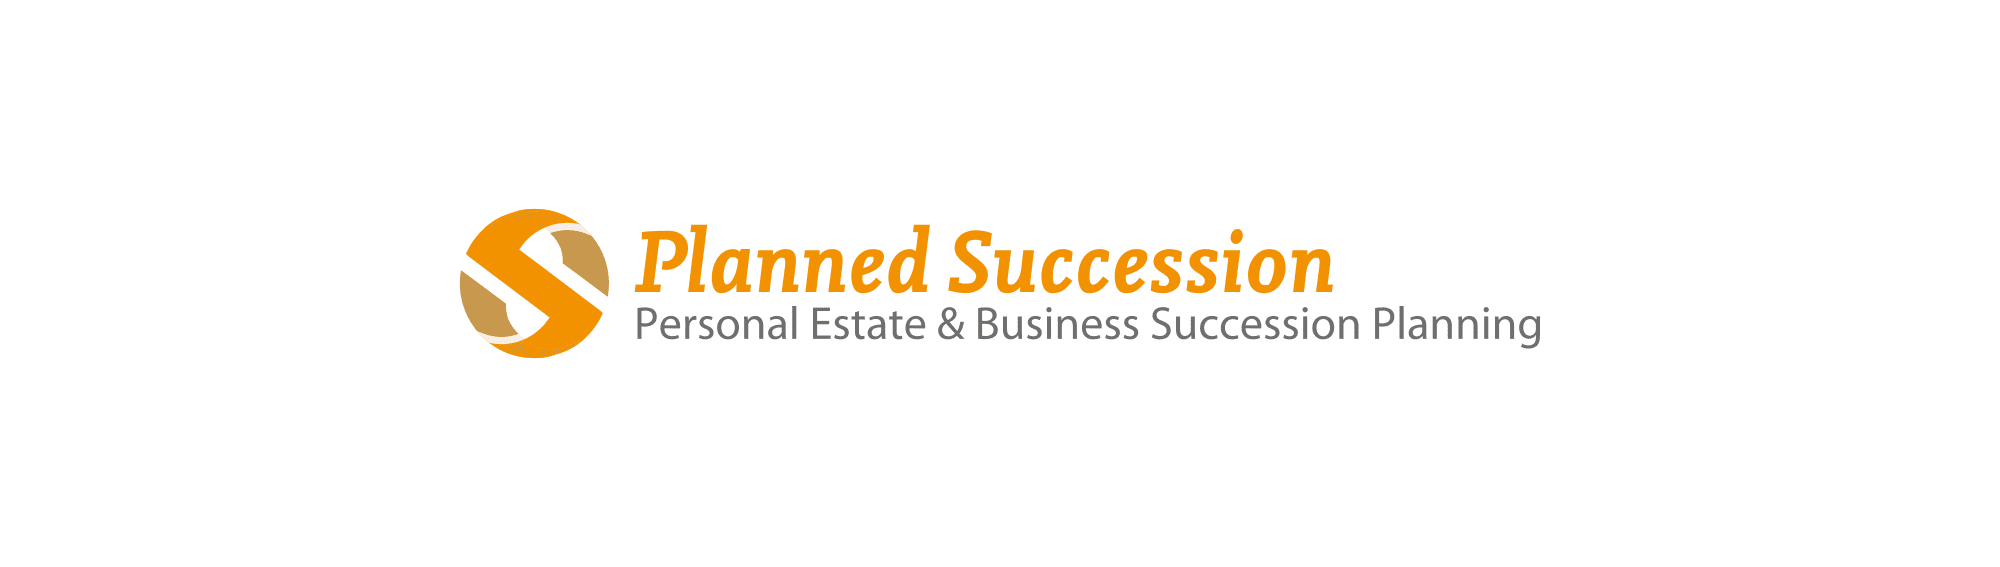 Planned Succession